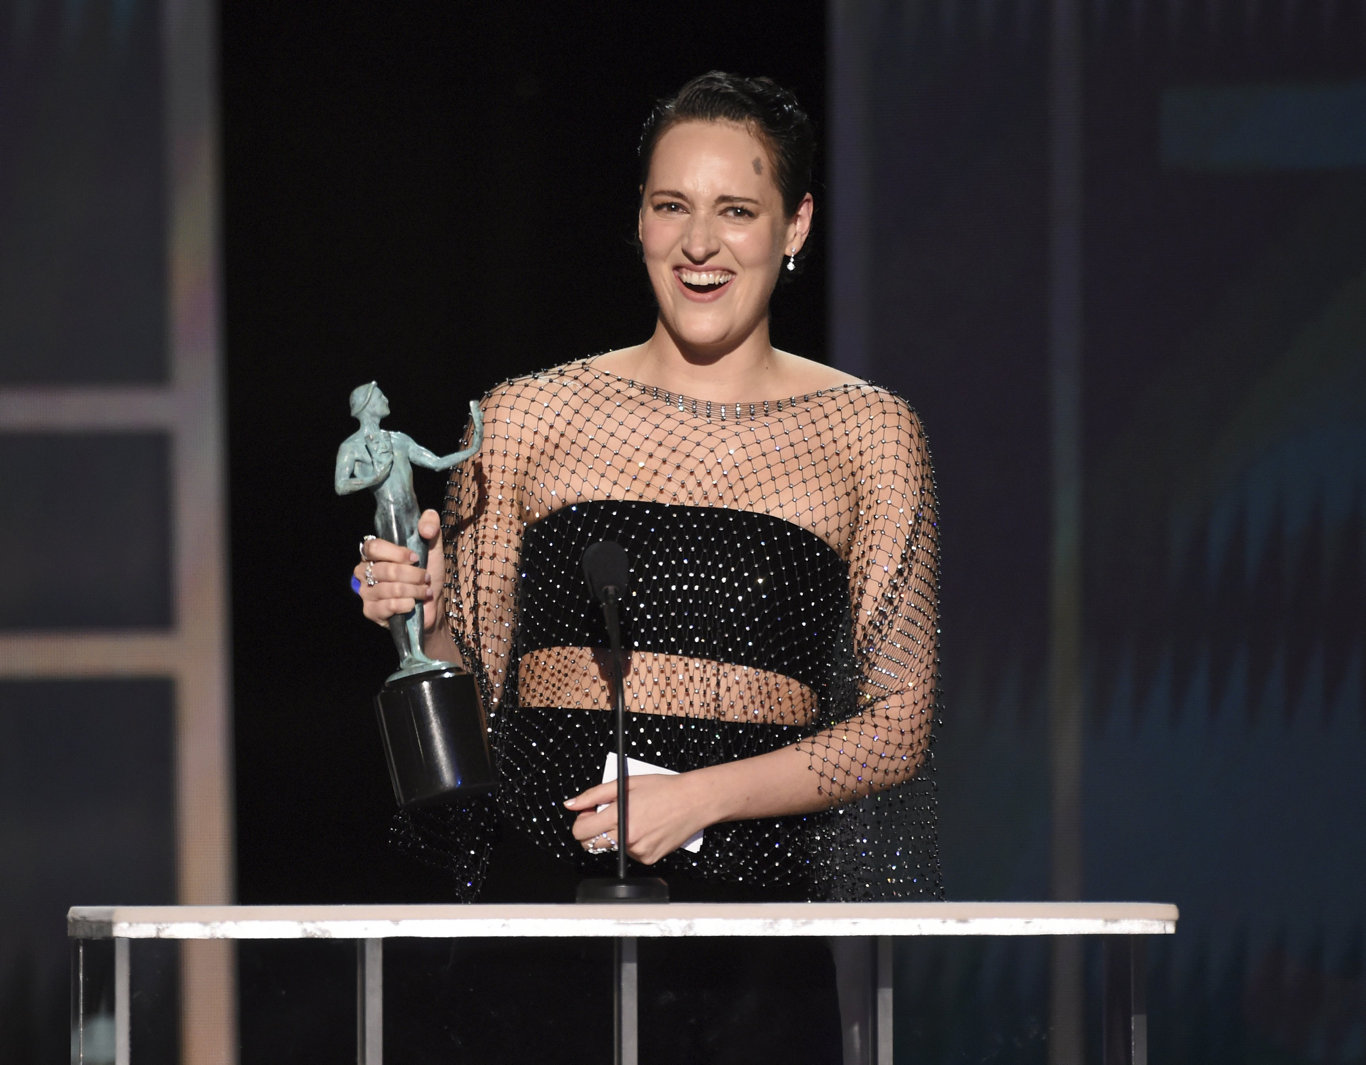 Phoebe Waller-Bridge accepts the award for outstanding performance by a female actor in a comedy series for Fleabag at the 26th annual Screen Actors Guild Awards.